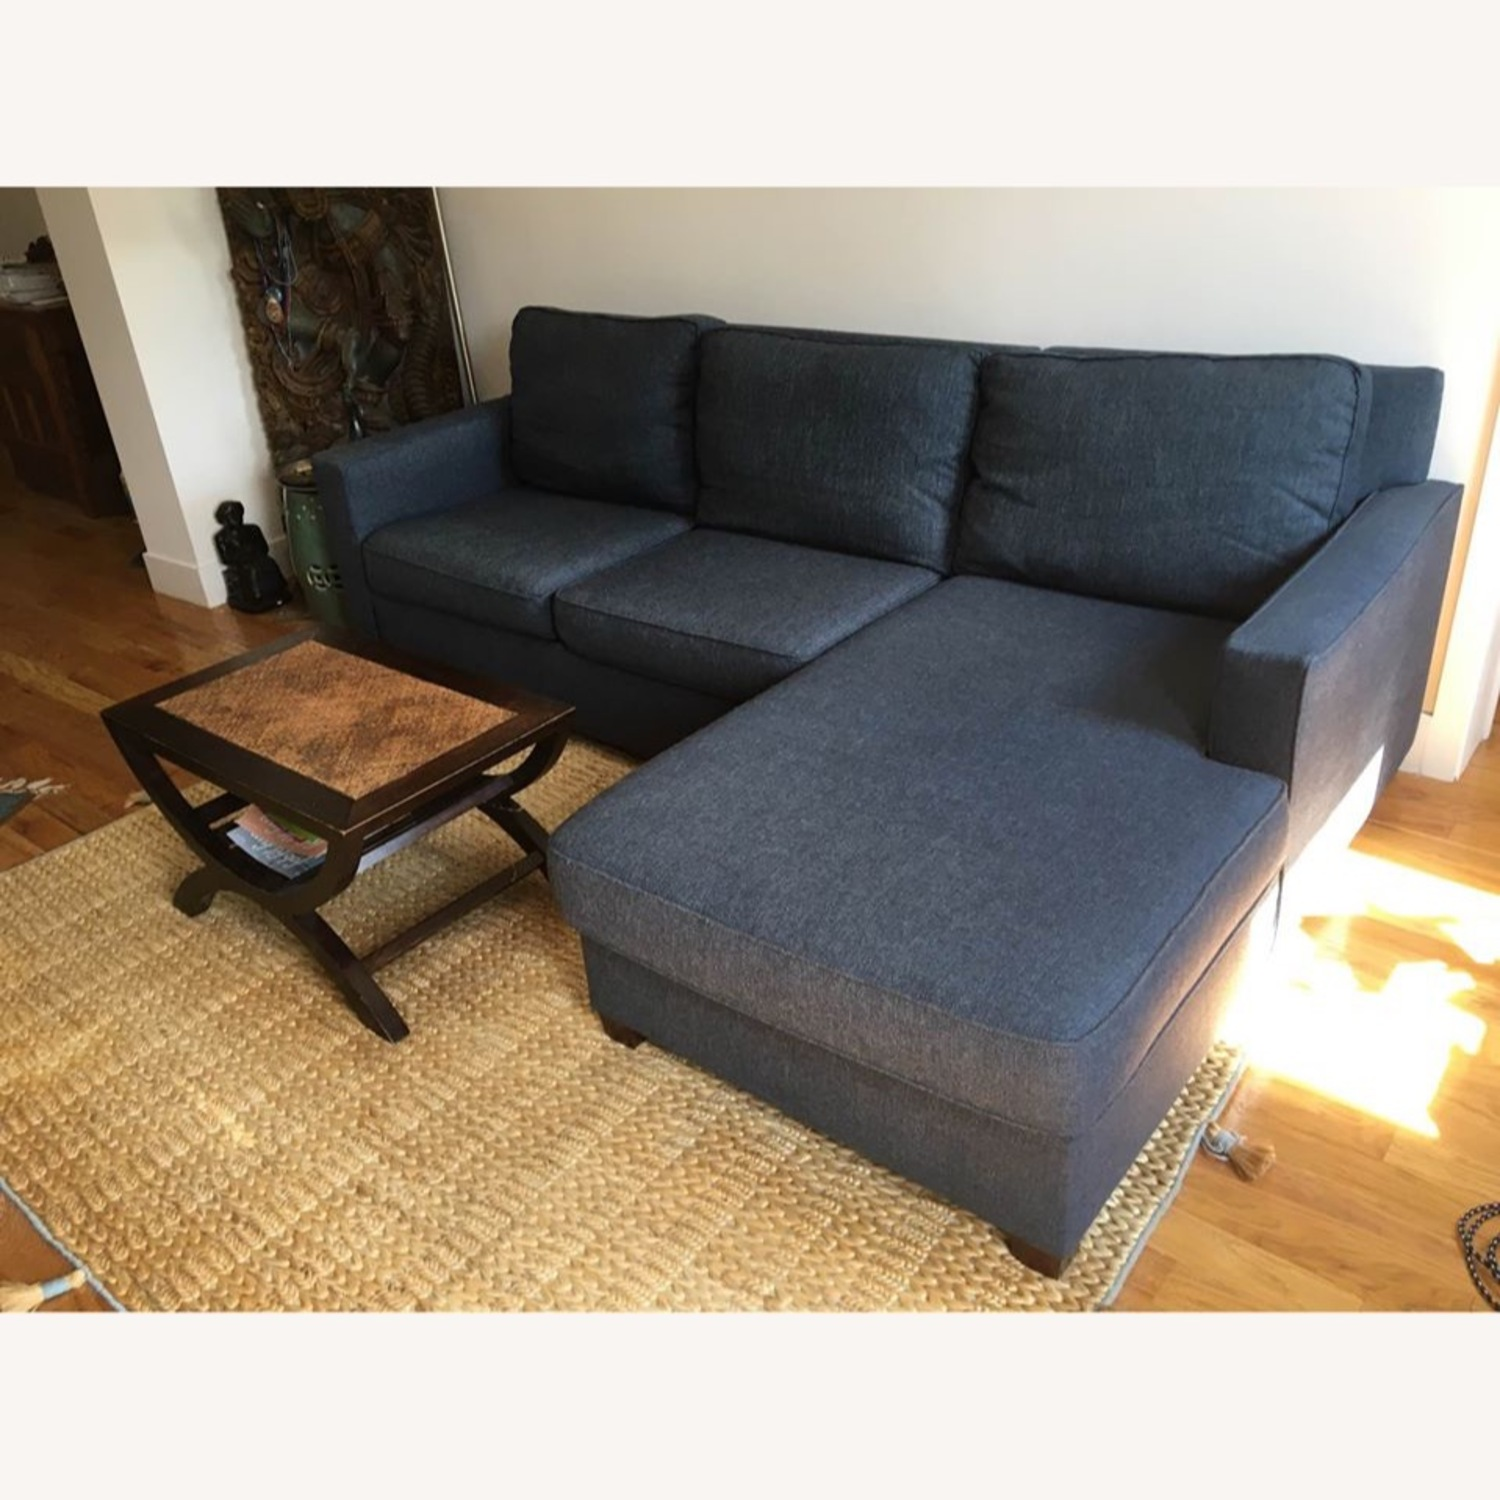 West Elm Henry L-Shaped Sofa in Blue Twill - image-3